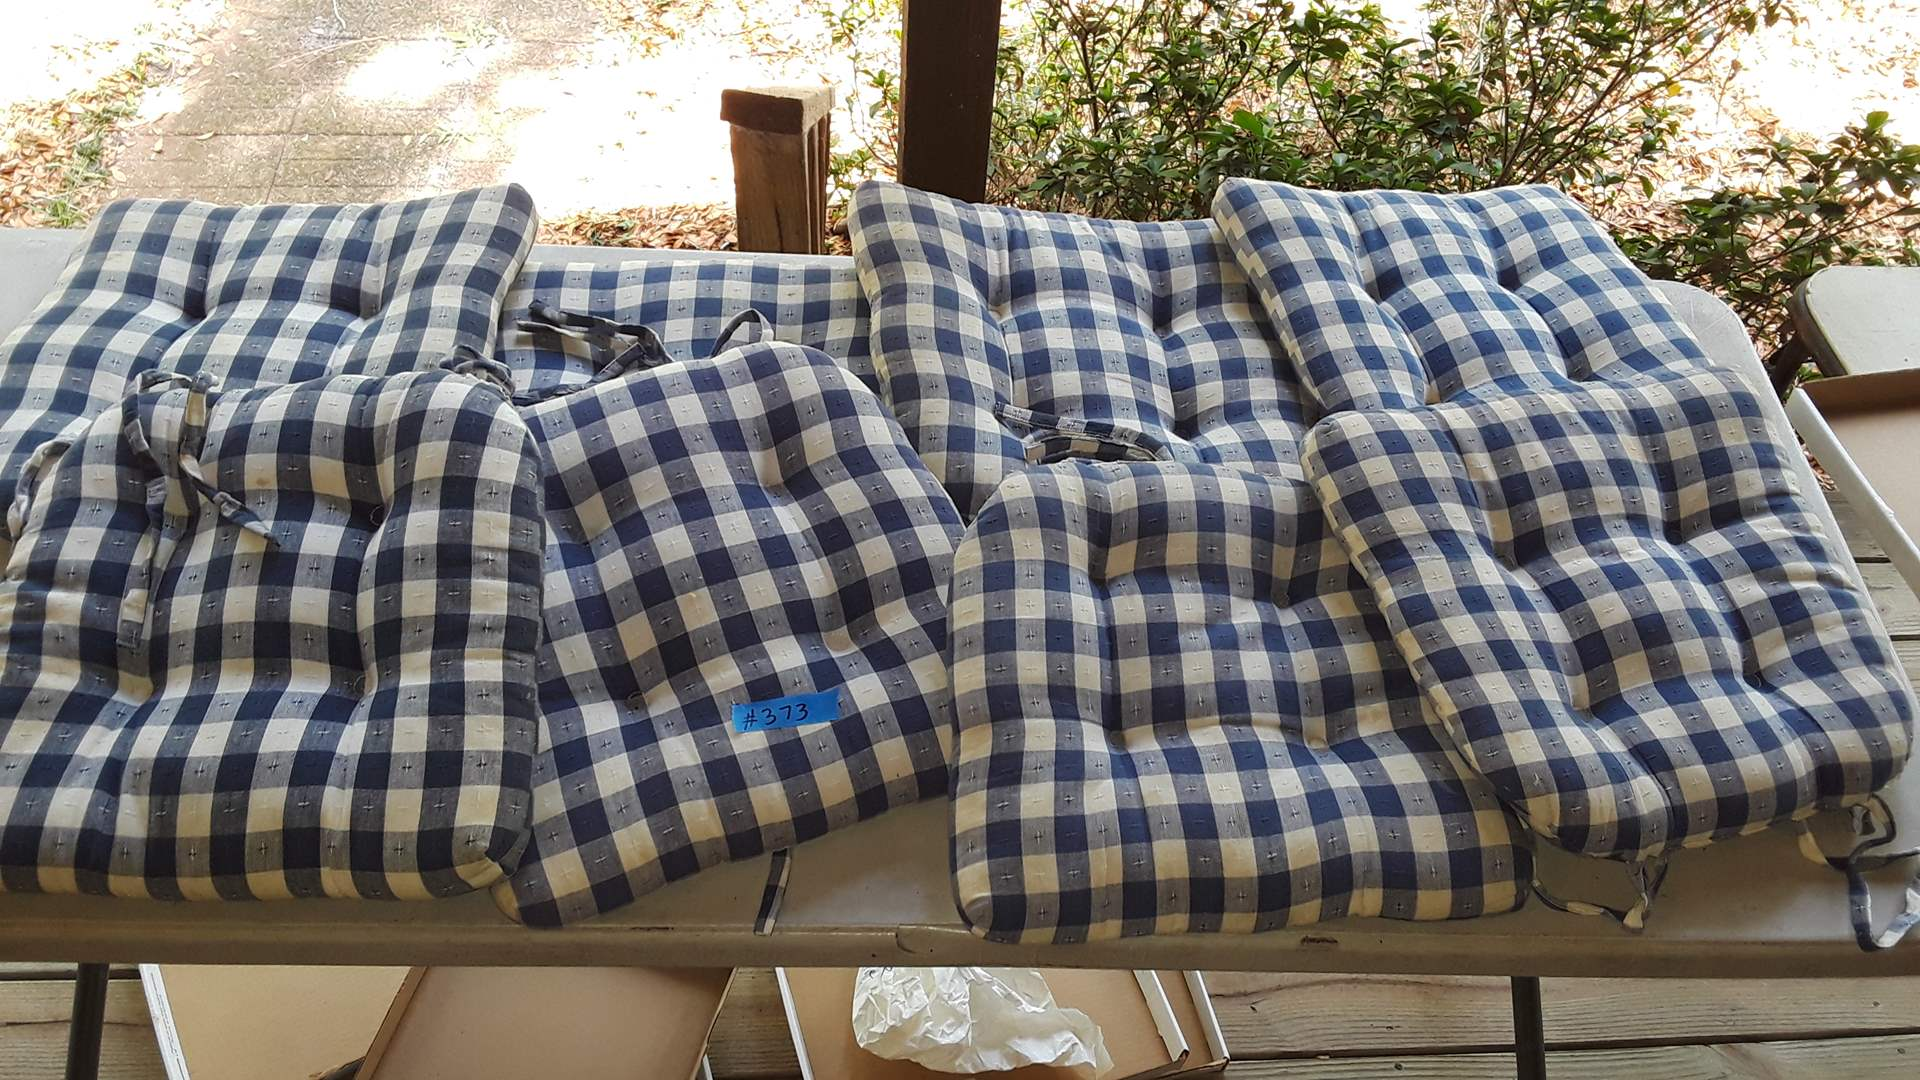 Lot # 373 - 8 BLUE AND WHITE CHAIR CUSHIONS